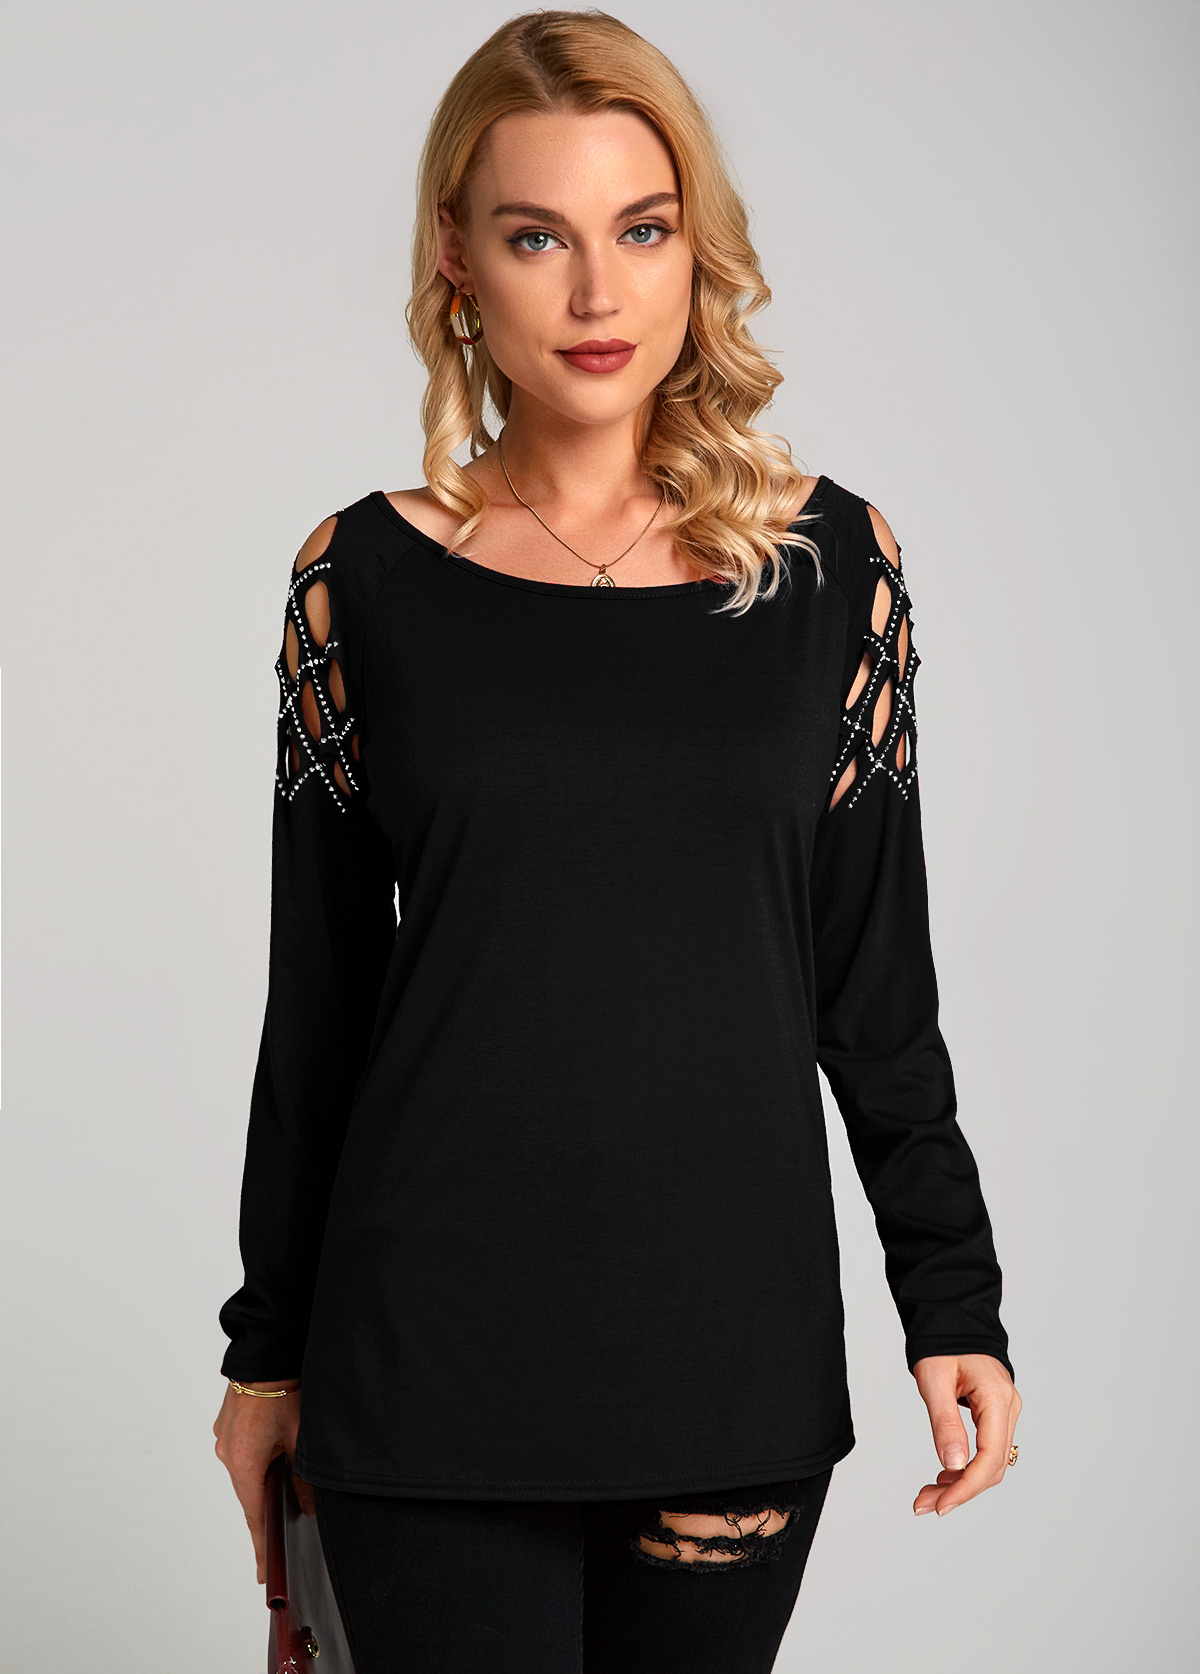 Hollow Out Shoulder Hot Drilling T Shirt